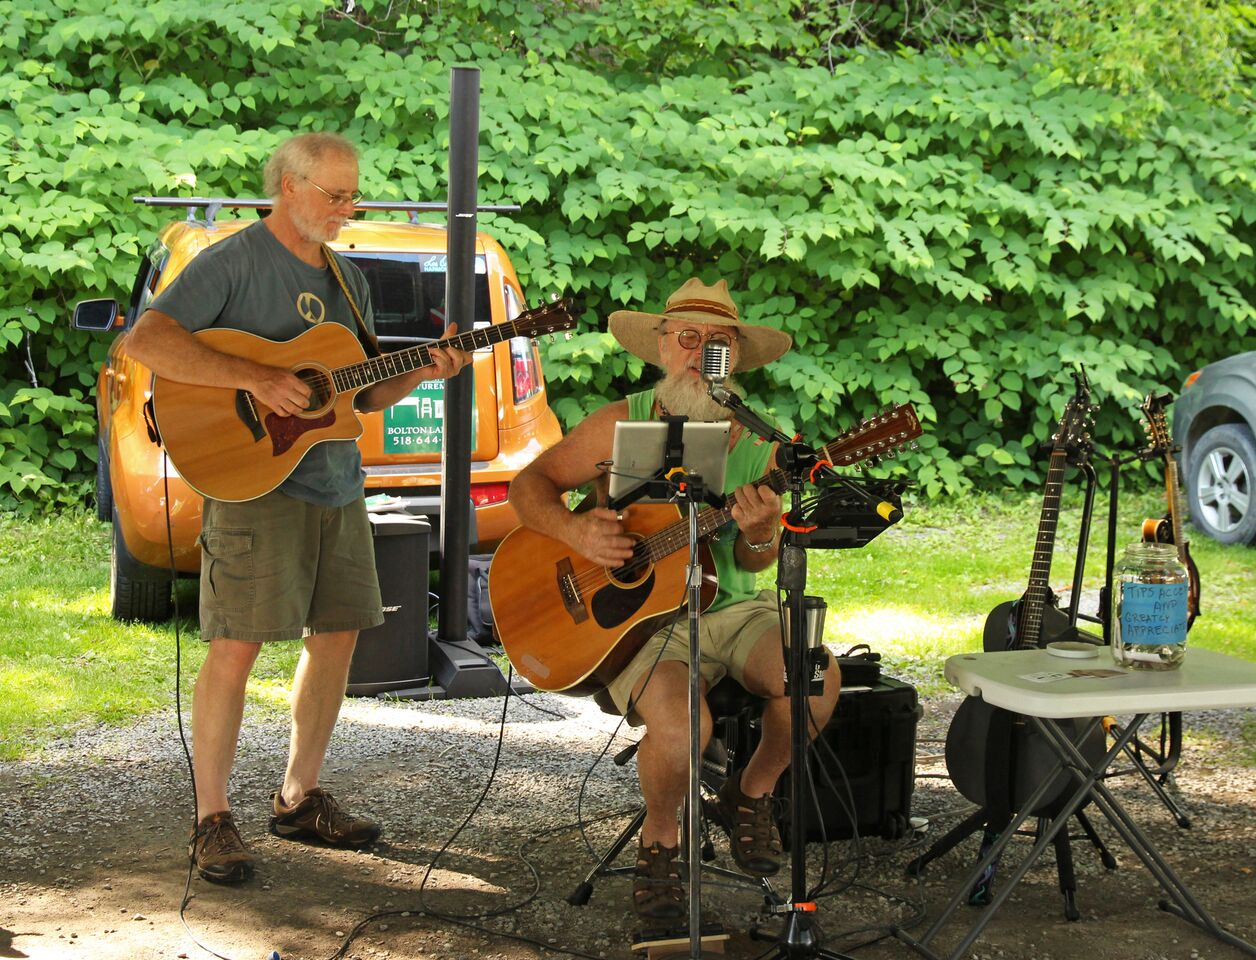 Musicians Create the Beat at the Farmers' Market